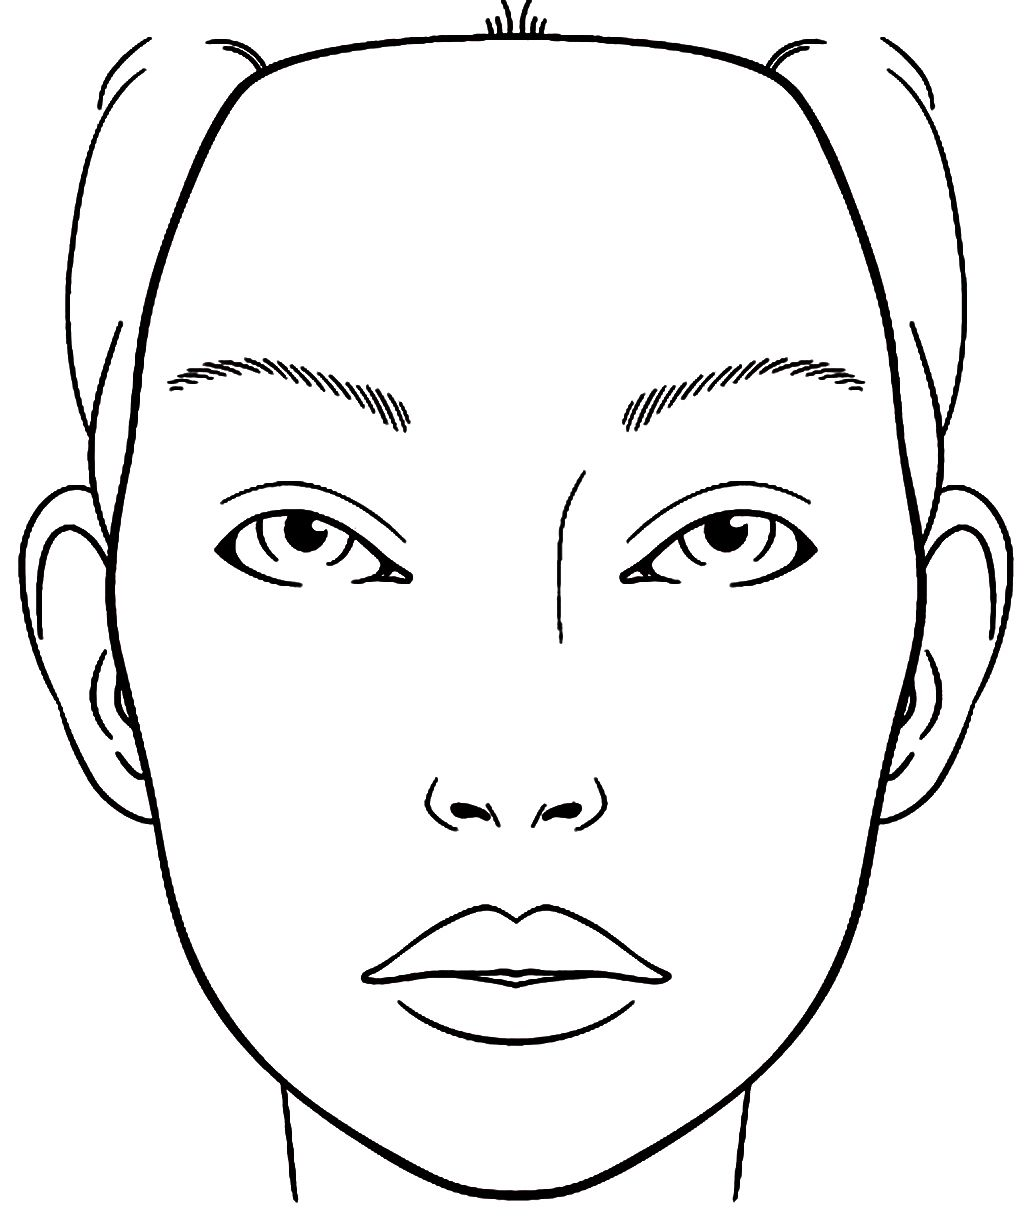 Blank Face Chart Sketch Coloring Page Teagans 7th Pinterest